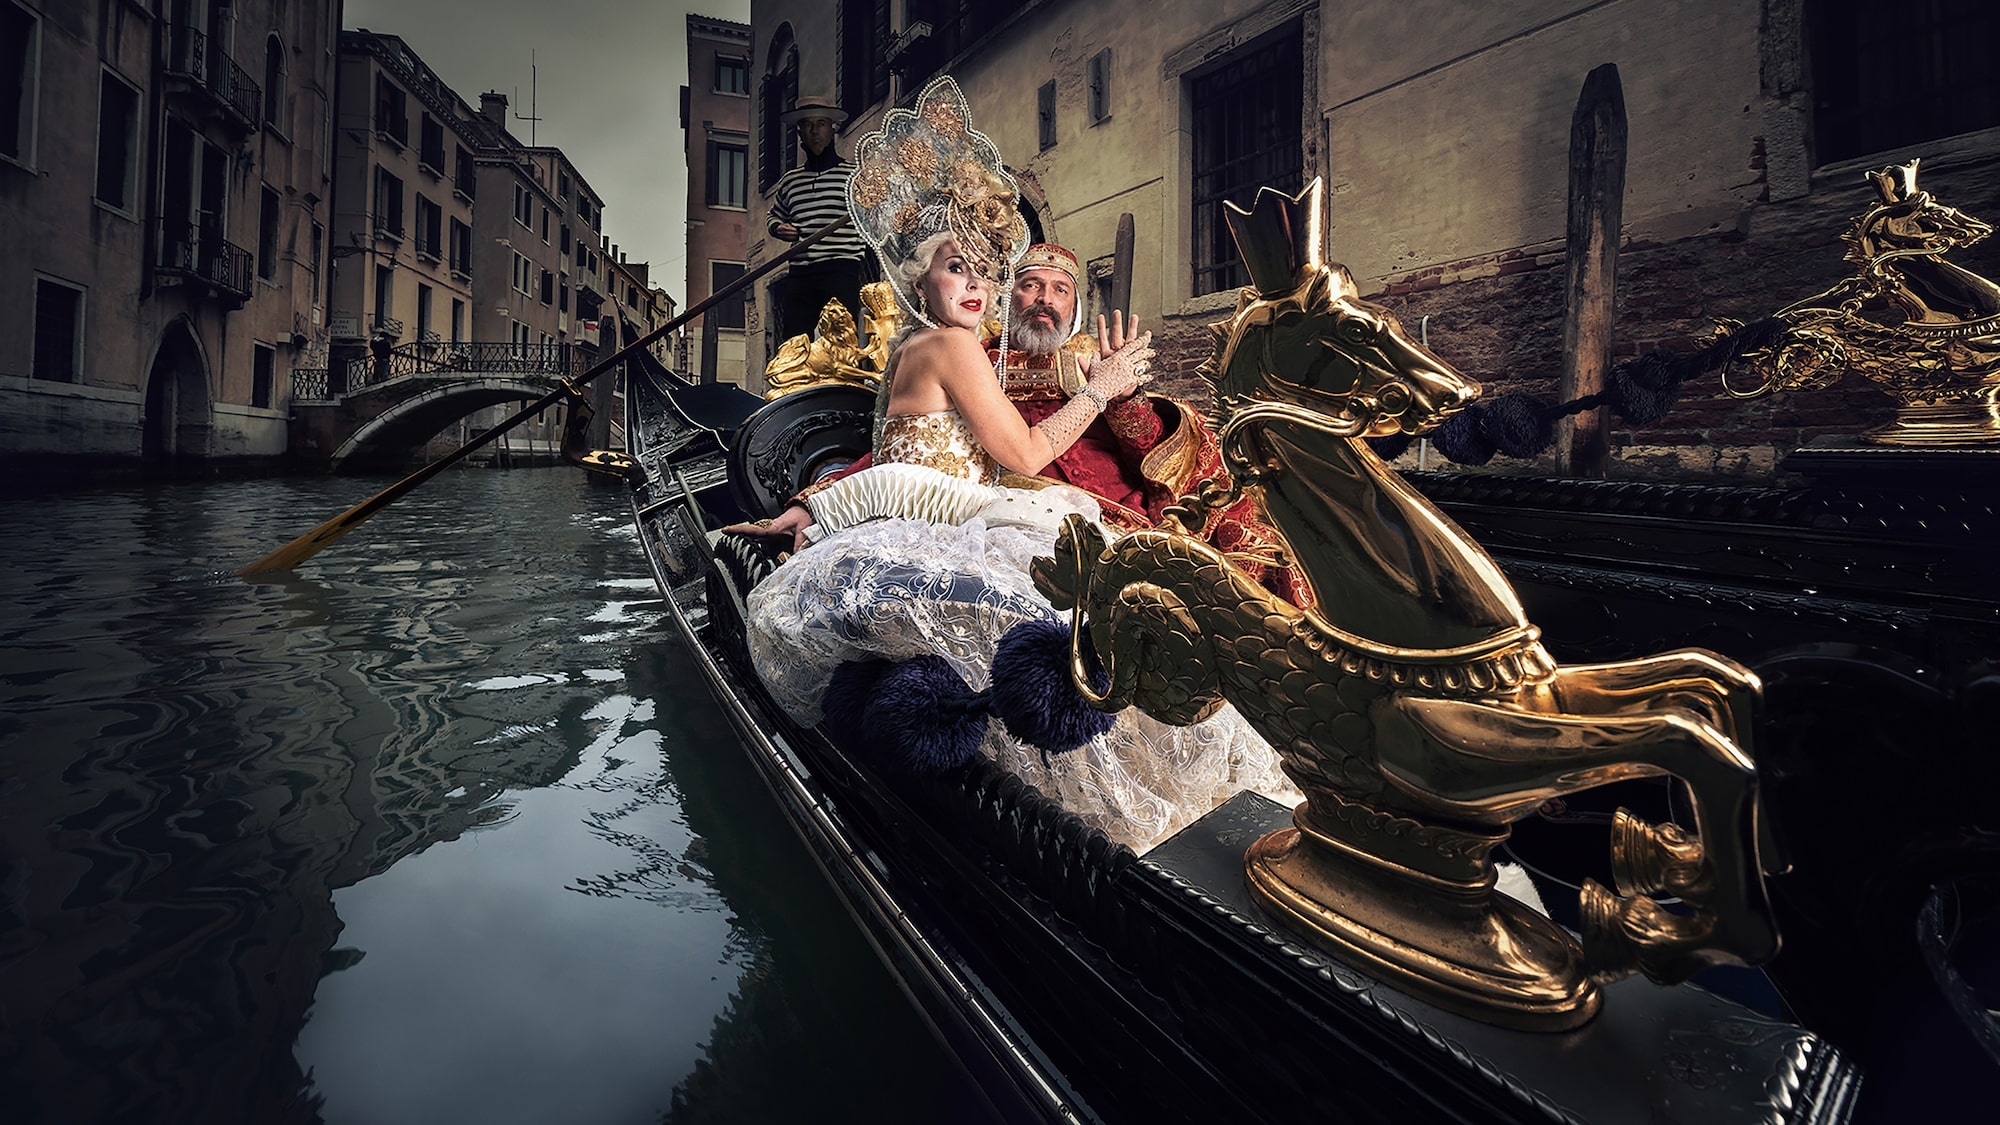 mathias kniepeiss sony alpha 7RIII costumed couple in a gondola holding hands